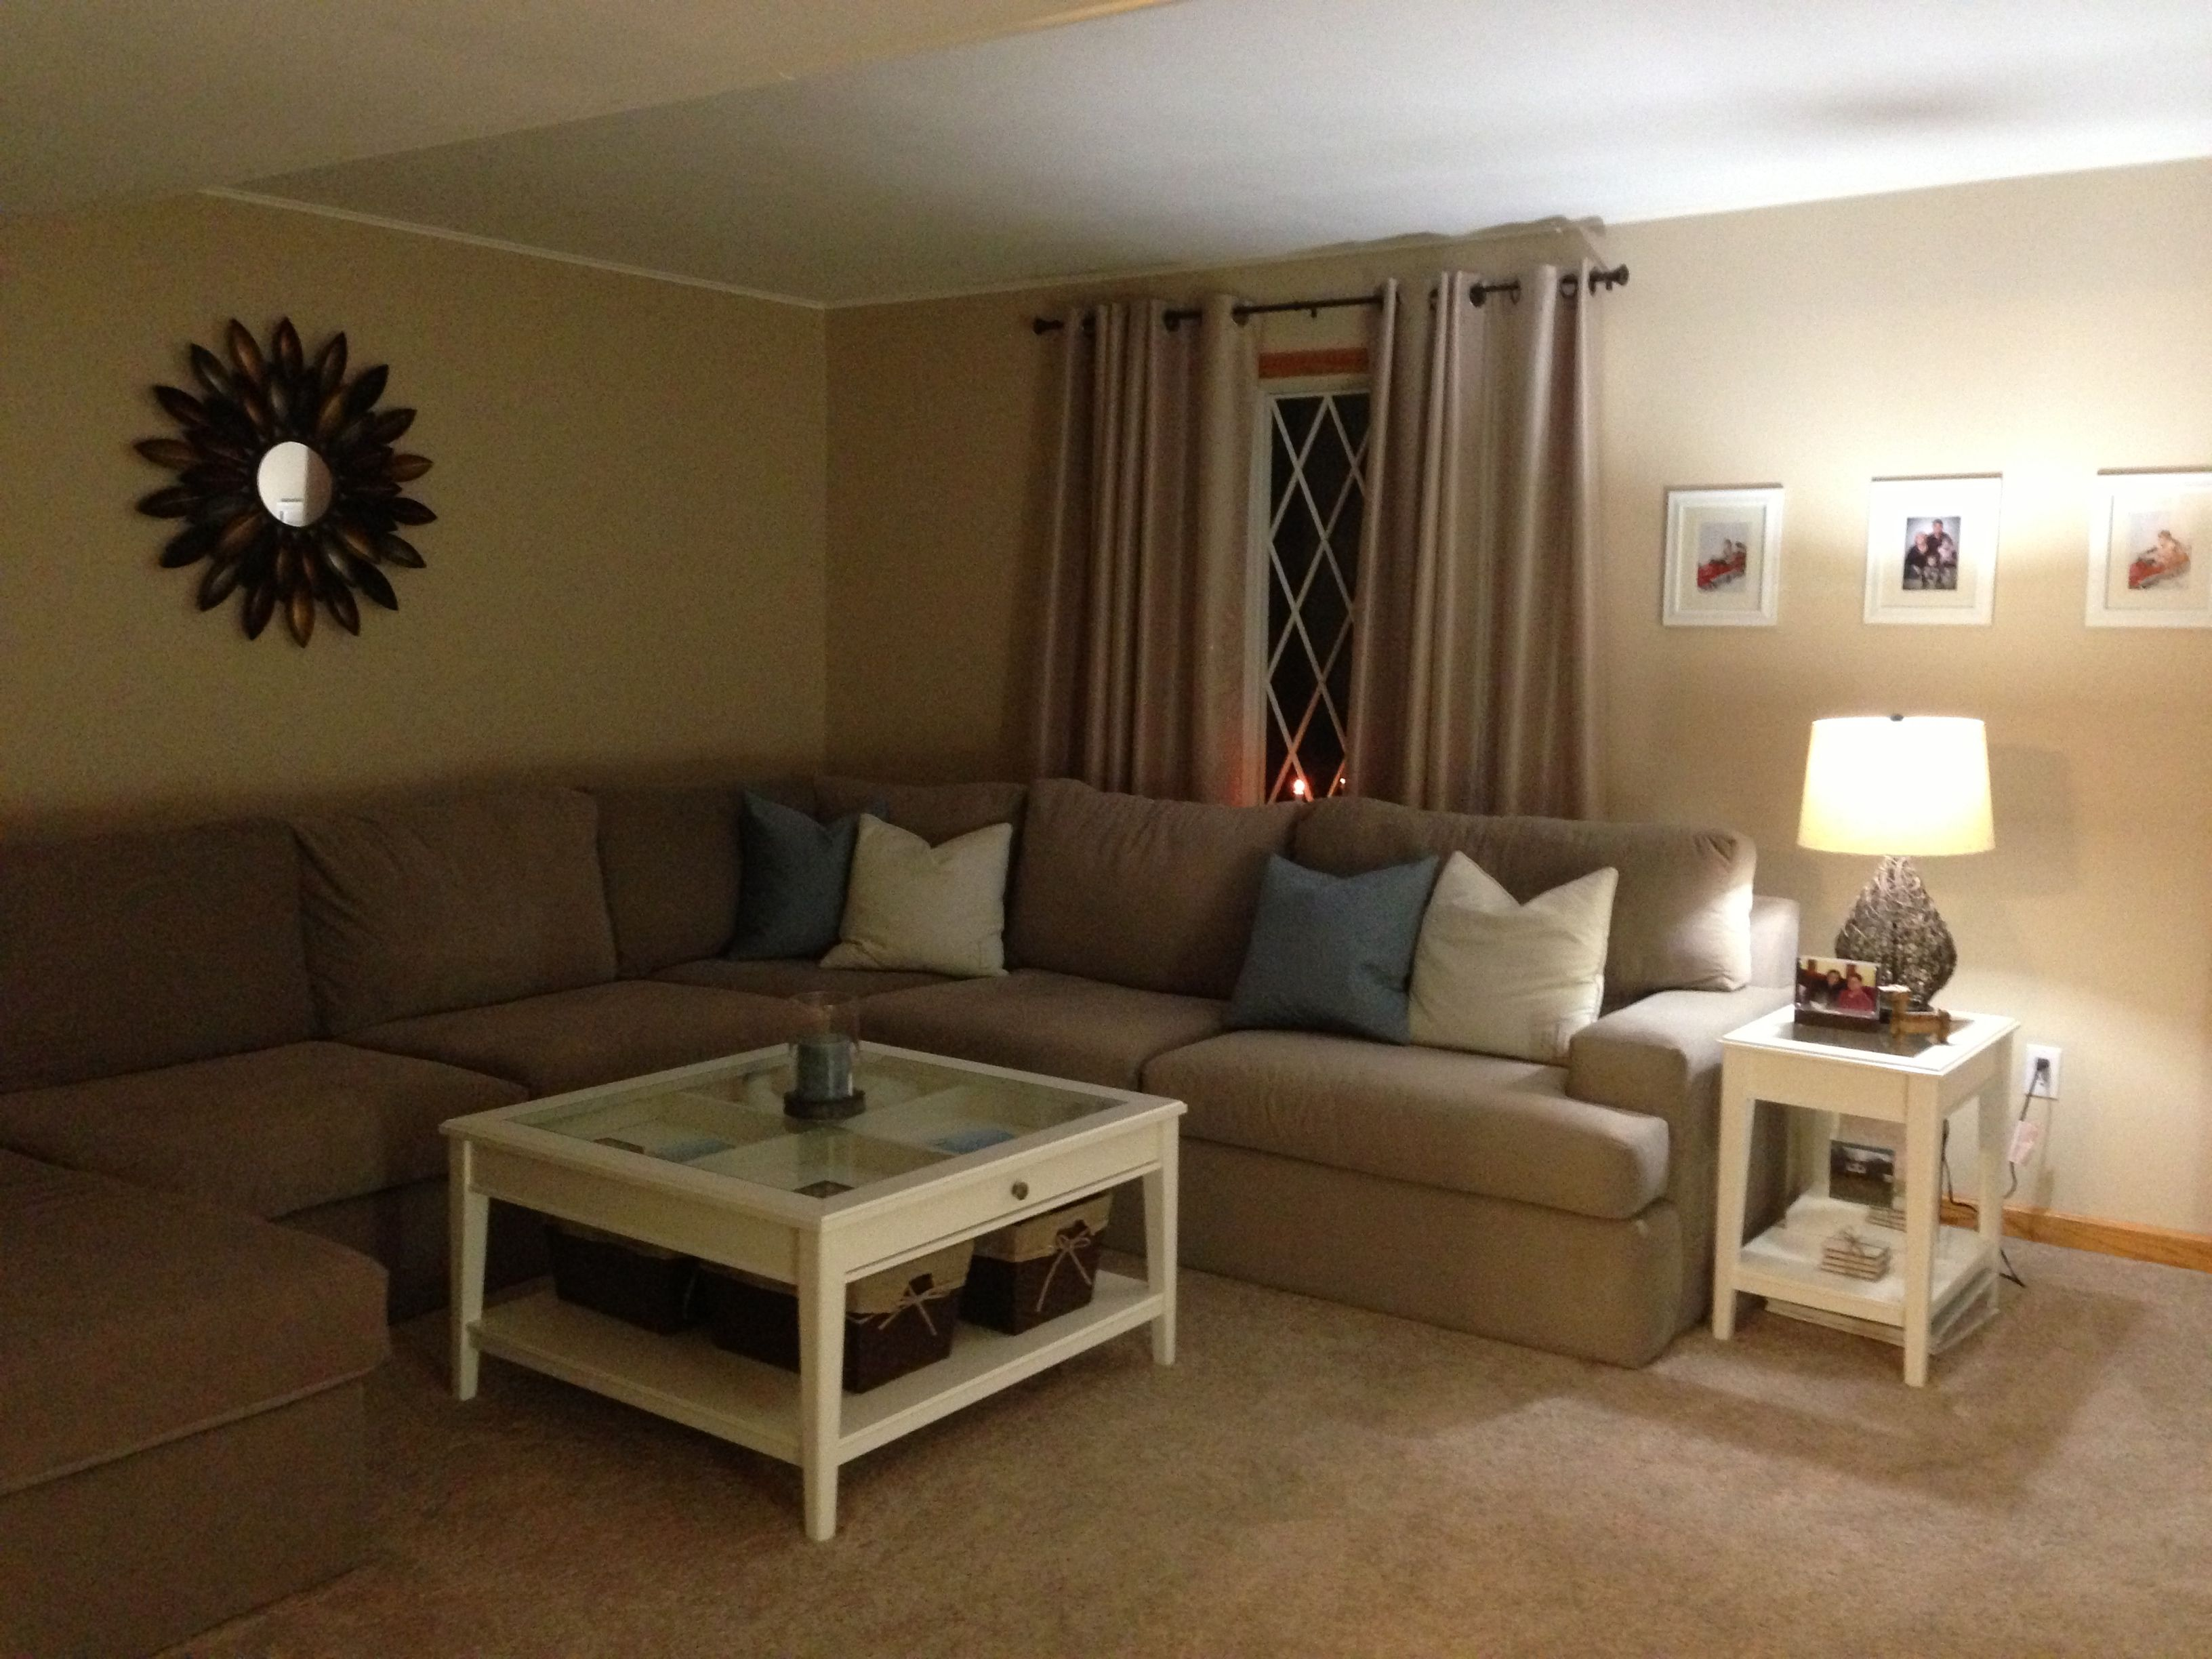 Best 25 Tan sectional ideas on Pinterest Tan couches Tan couch